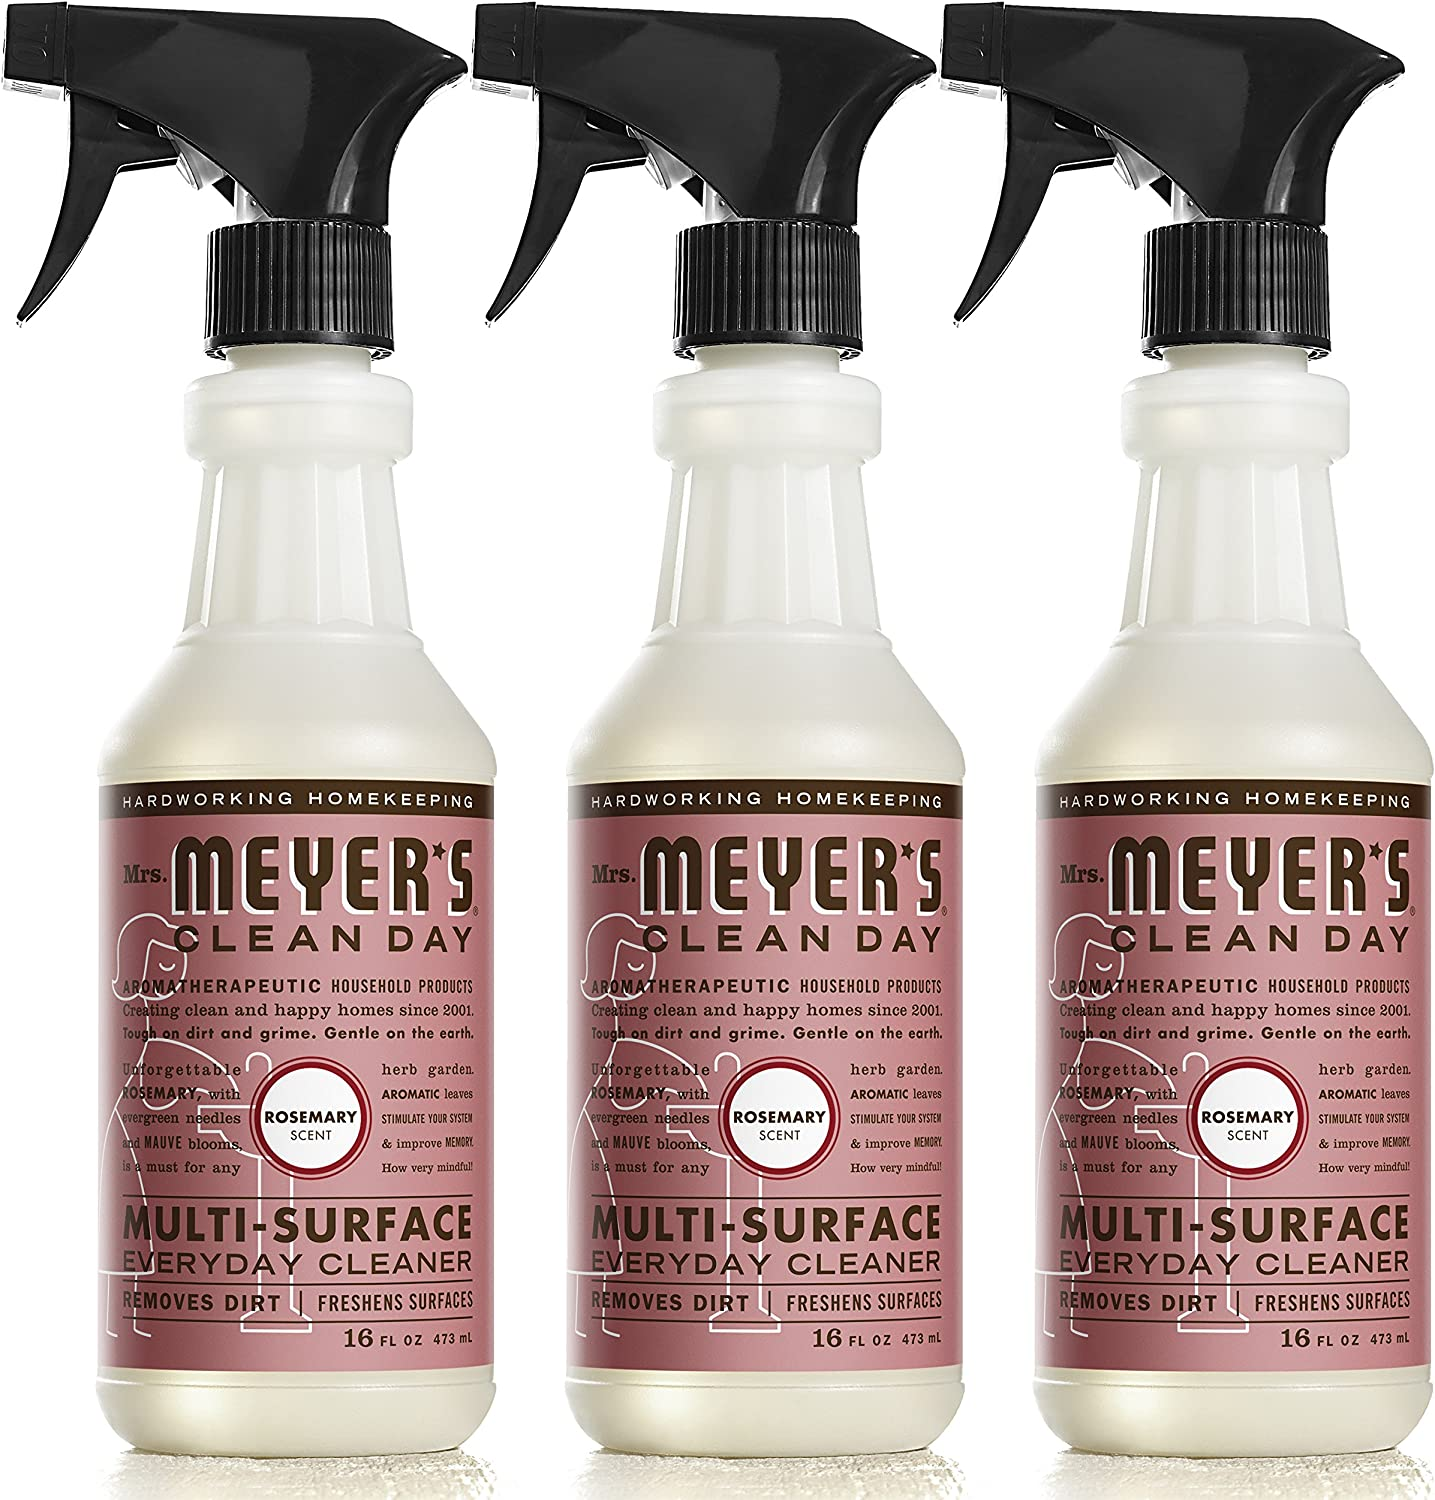 Mrs. Meyer's Clean Day Multi-Surface Cleaner Spray, Everyday Cleaning Solution for Countertops, Floors, Walls and More, Rosemary, 16 fl oz - Pack of 3 Spray Bottles